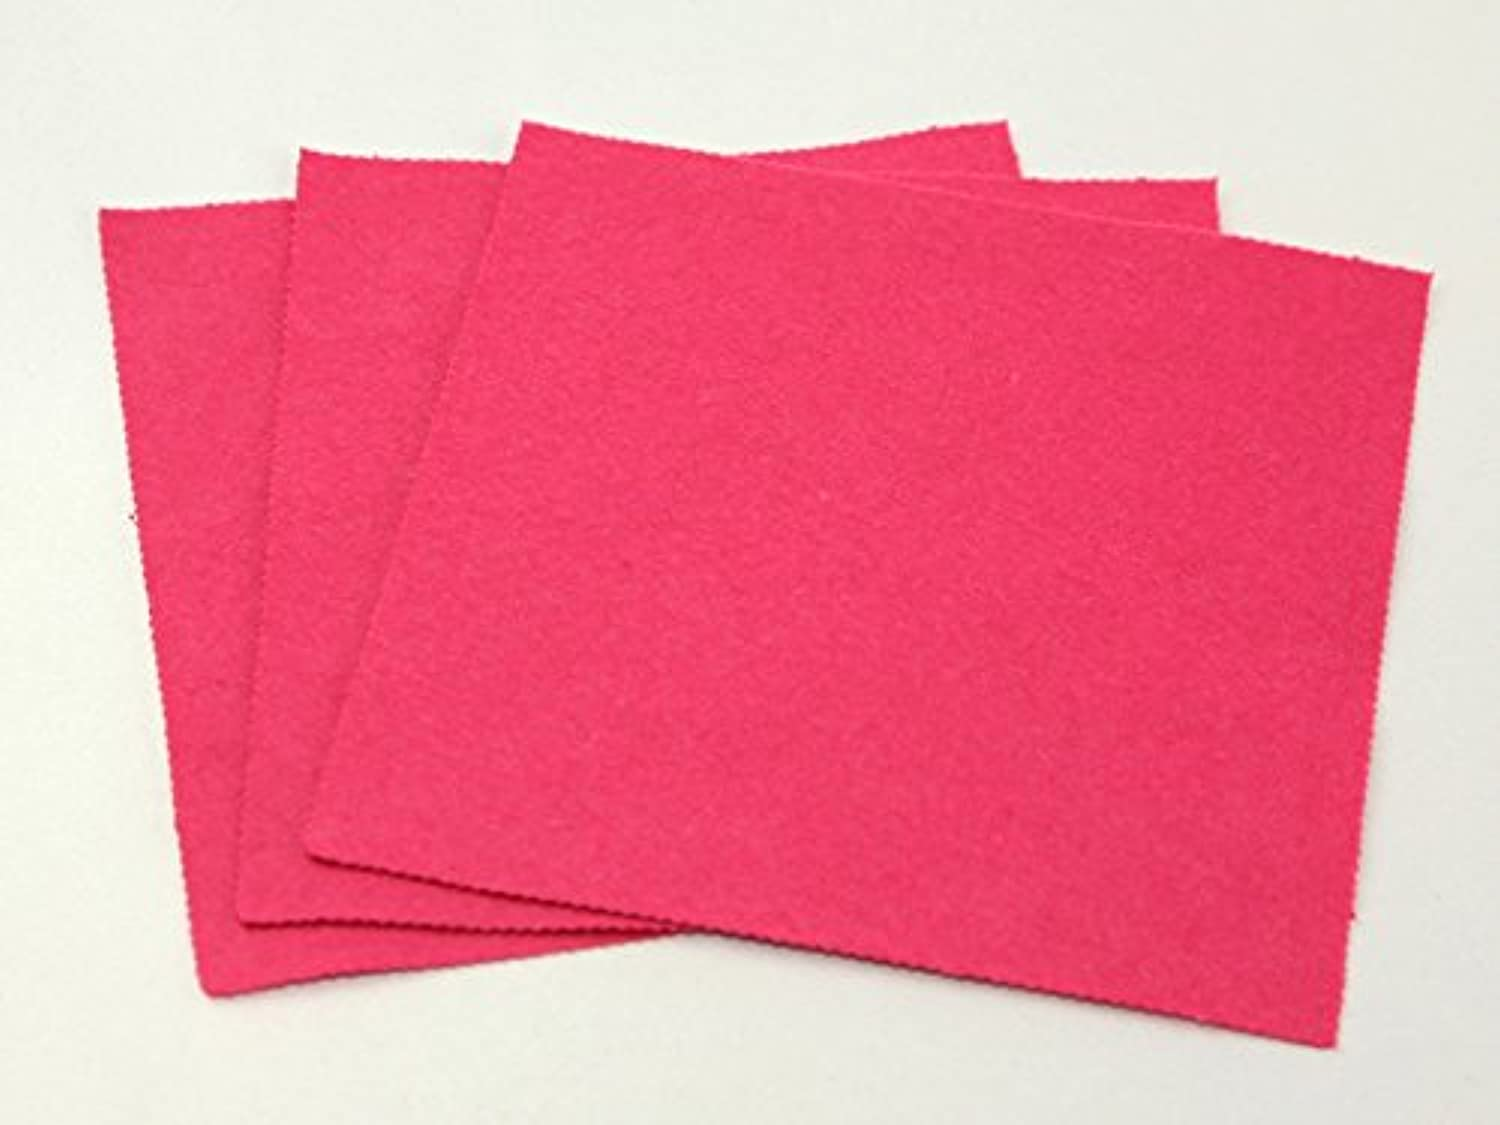 Plain Acrylic Felt Fabric 18  Square Heather Pink  per pack of 50